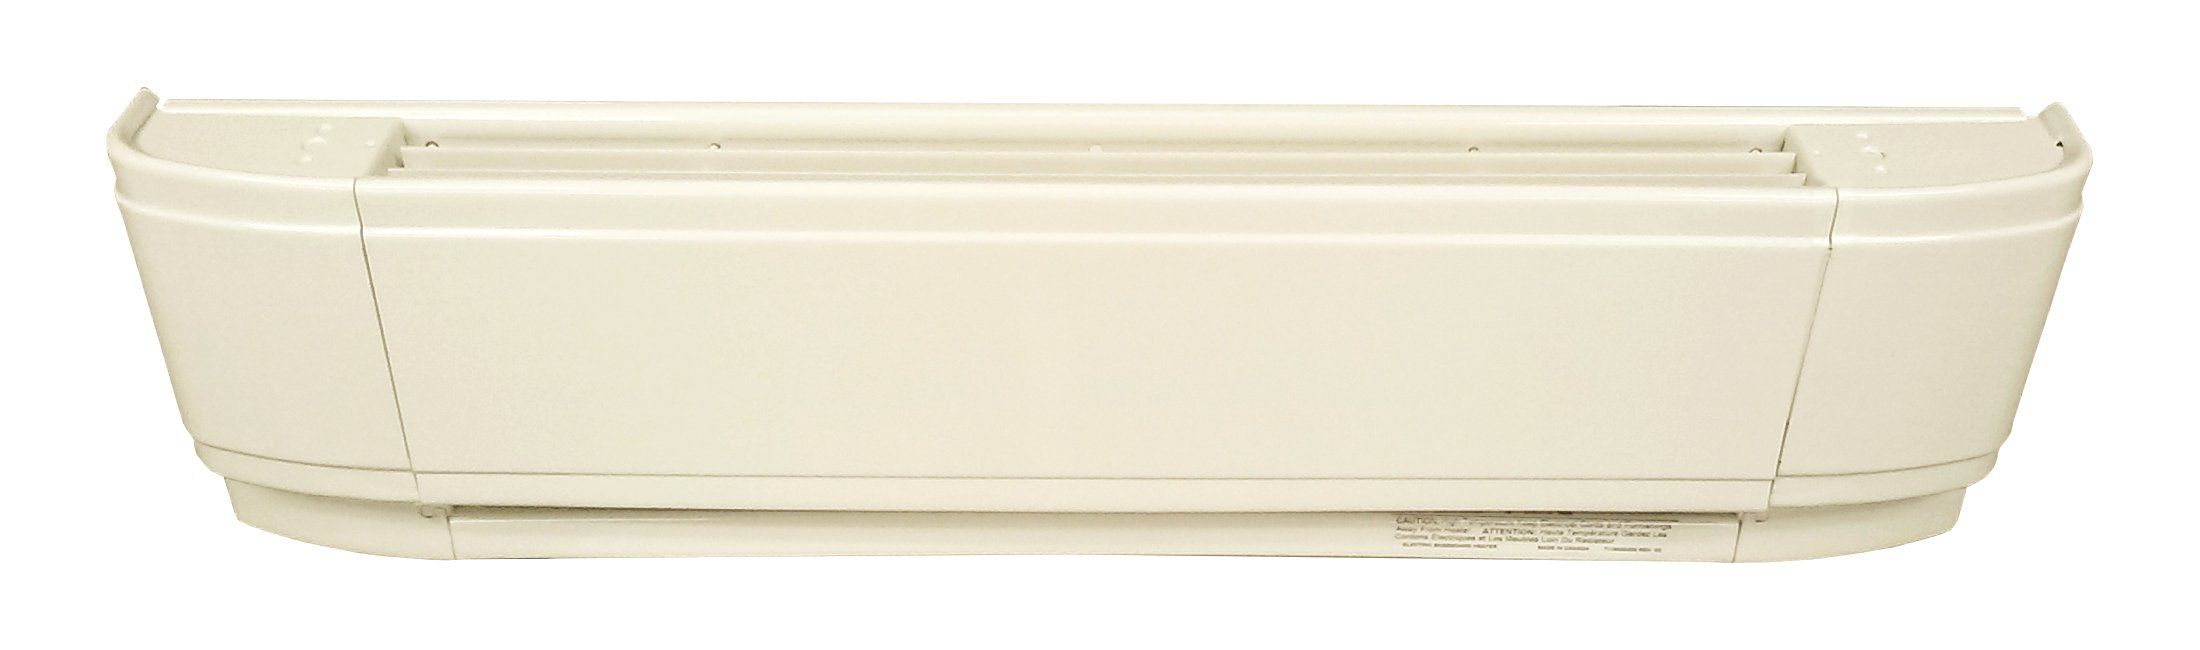 Dimplex Lcm501231 Almond 50 Baseboard Heater 1250 938w 240 208v 4265 3199btu Click Image For More With Images Baseboard Heater Baseboards Electric Baseboard Heaters